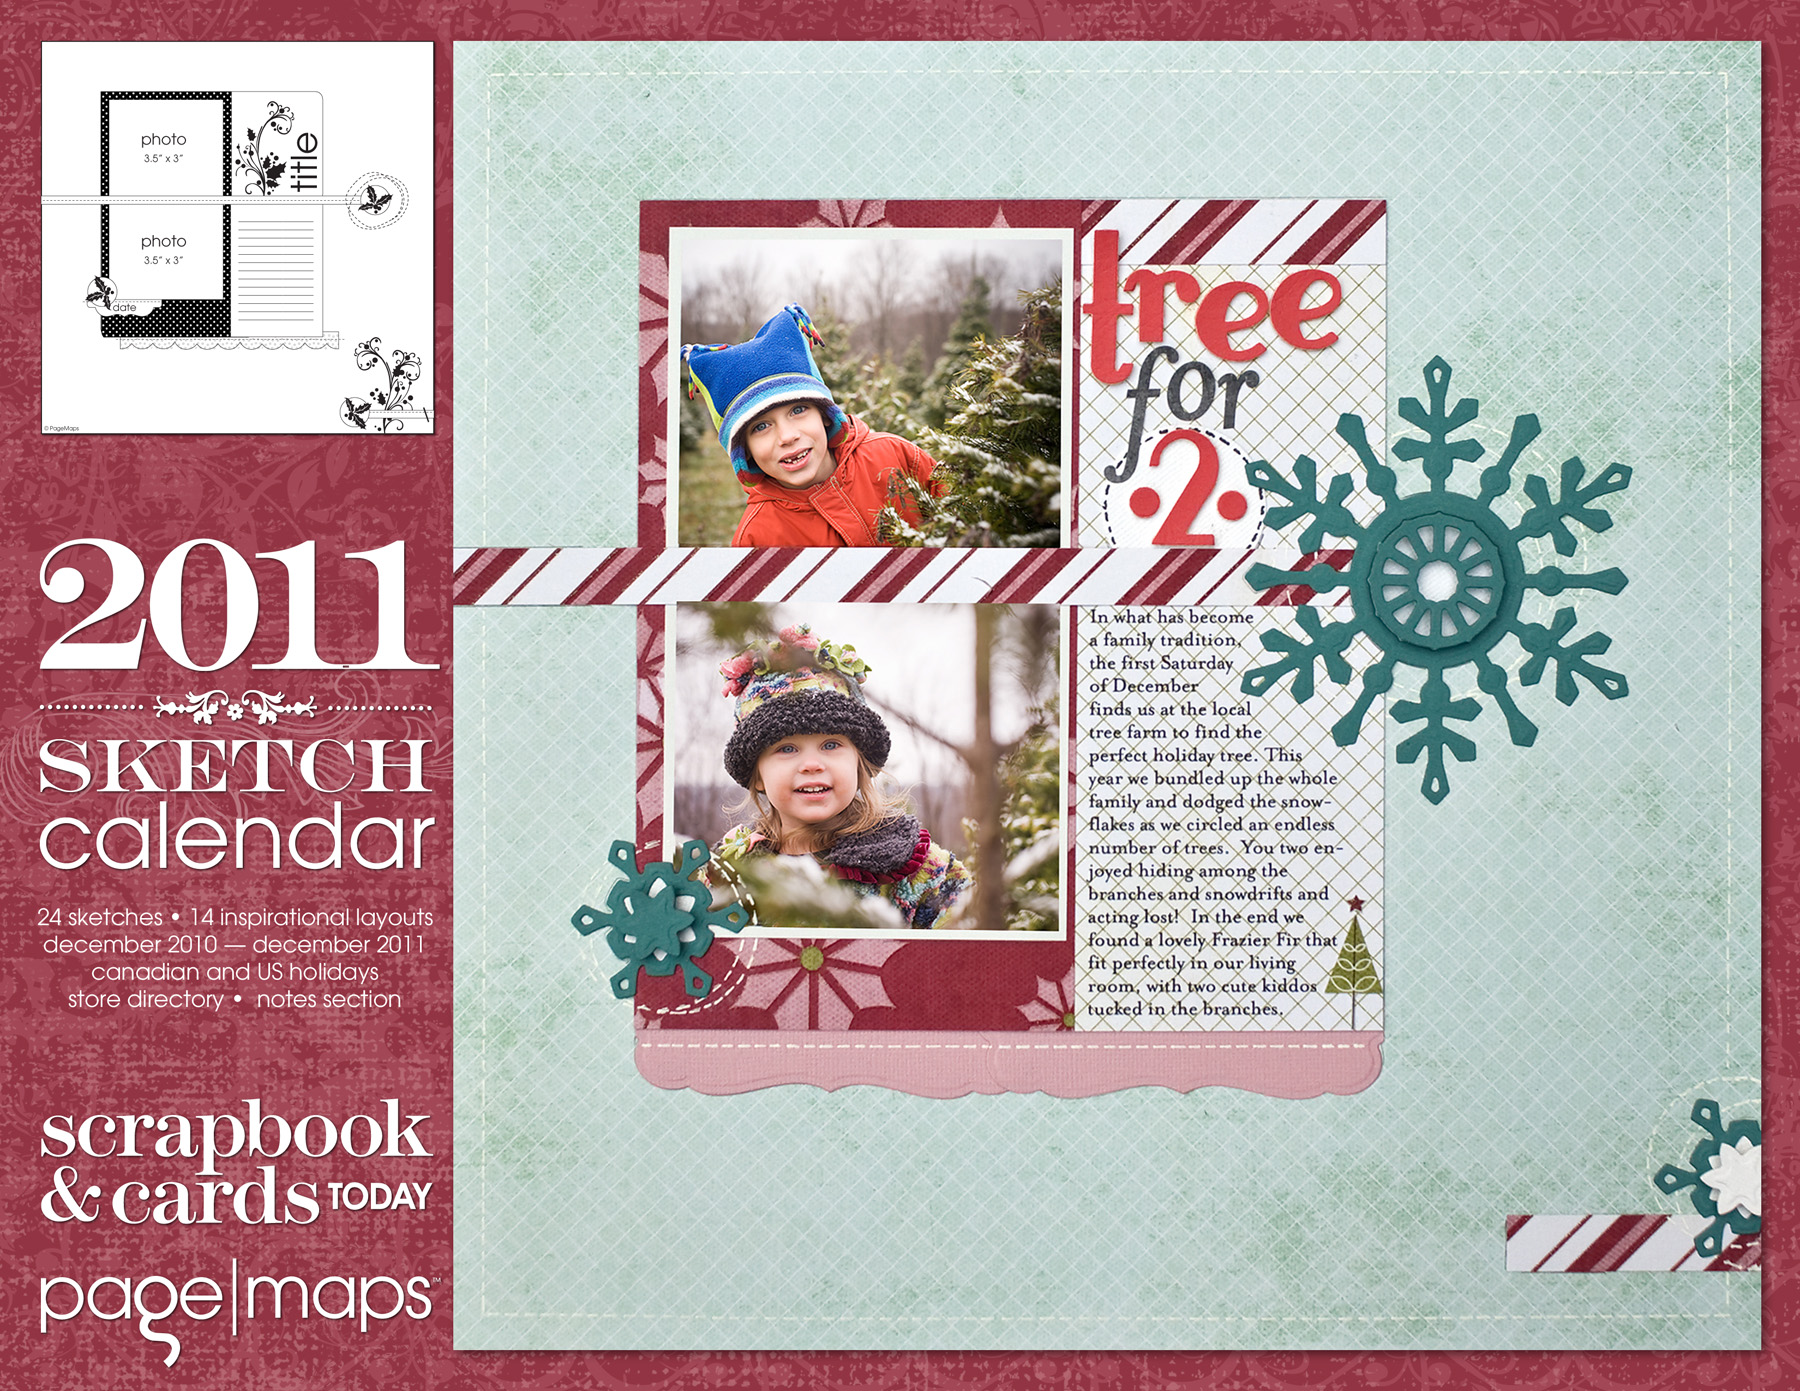 How to scrapbook magazines - Well One Of Our Store Owners That Received The Magazines Jenn Langois Of The Scrapbox In Orleans Ontario Thought It Would Be Fun To Take January S